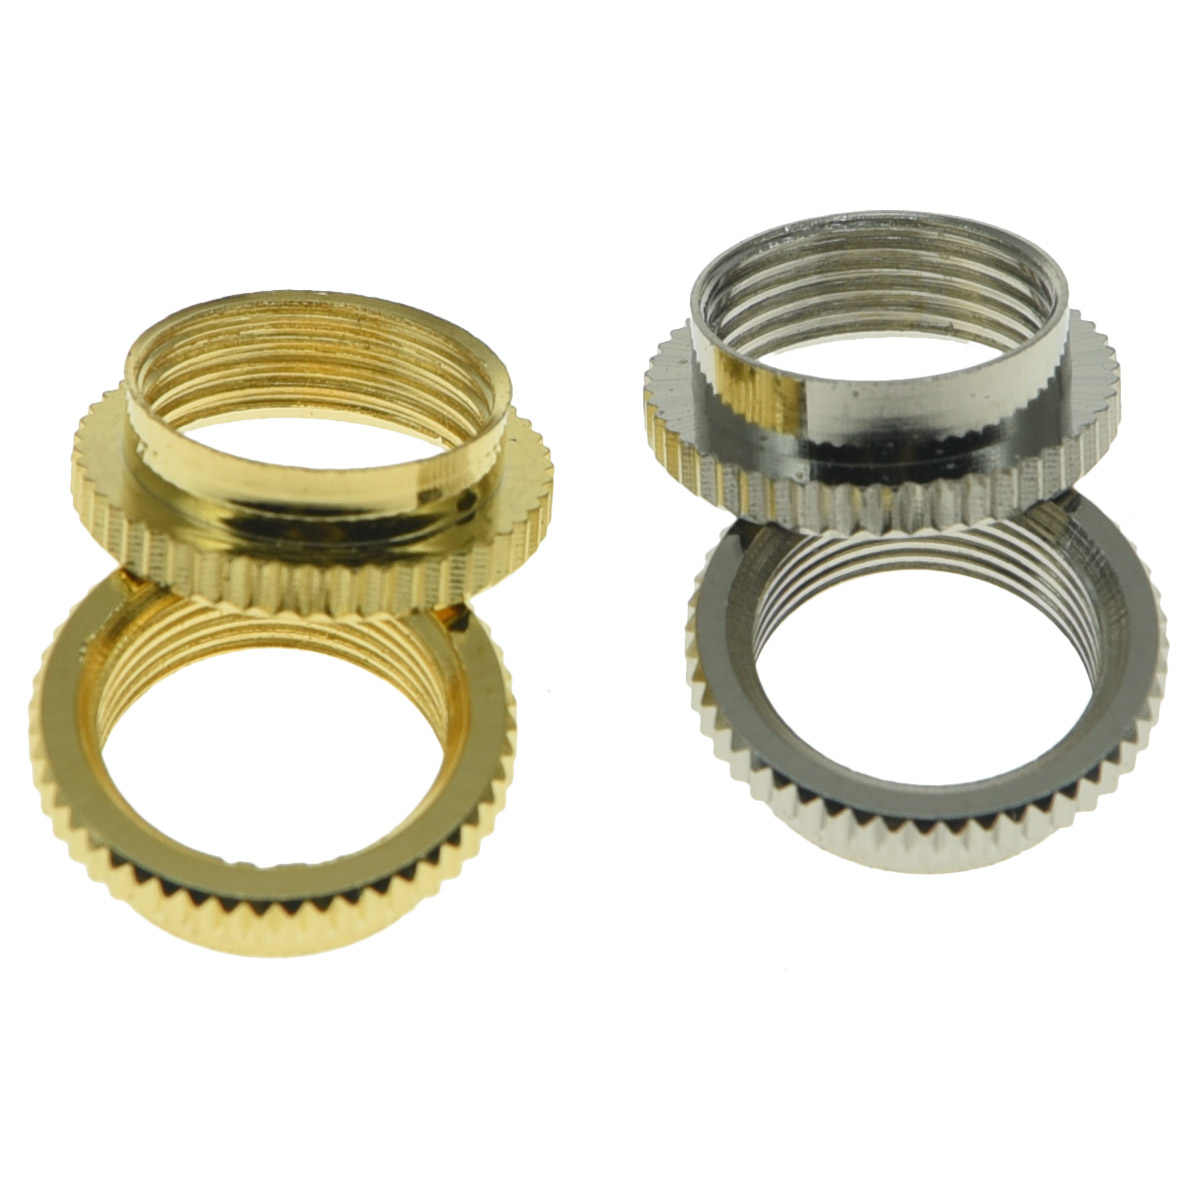 Gold Deep Nut for Switchcraft 3-way toggle switch fits GibsonEpiphone guitars